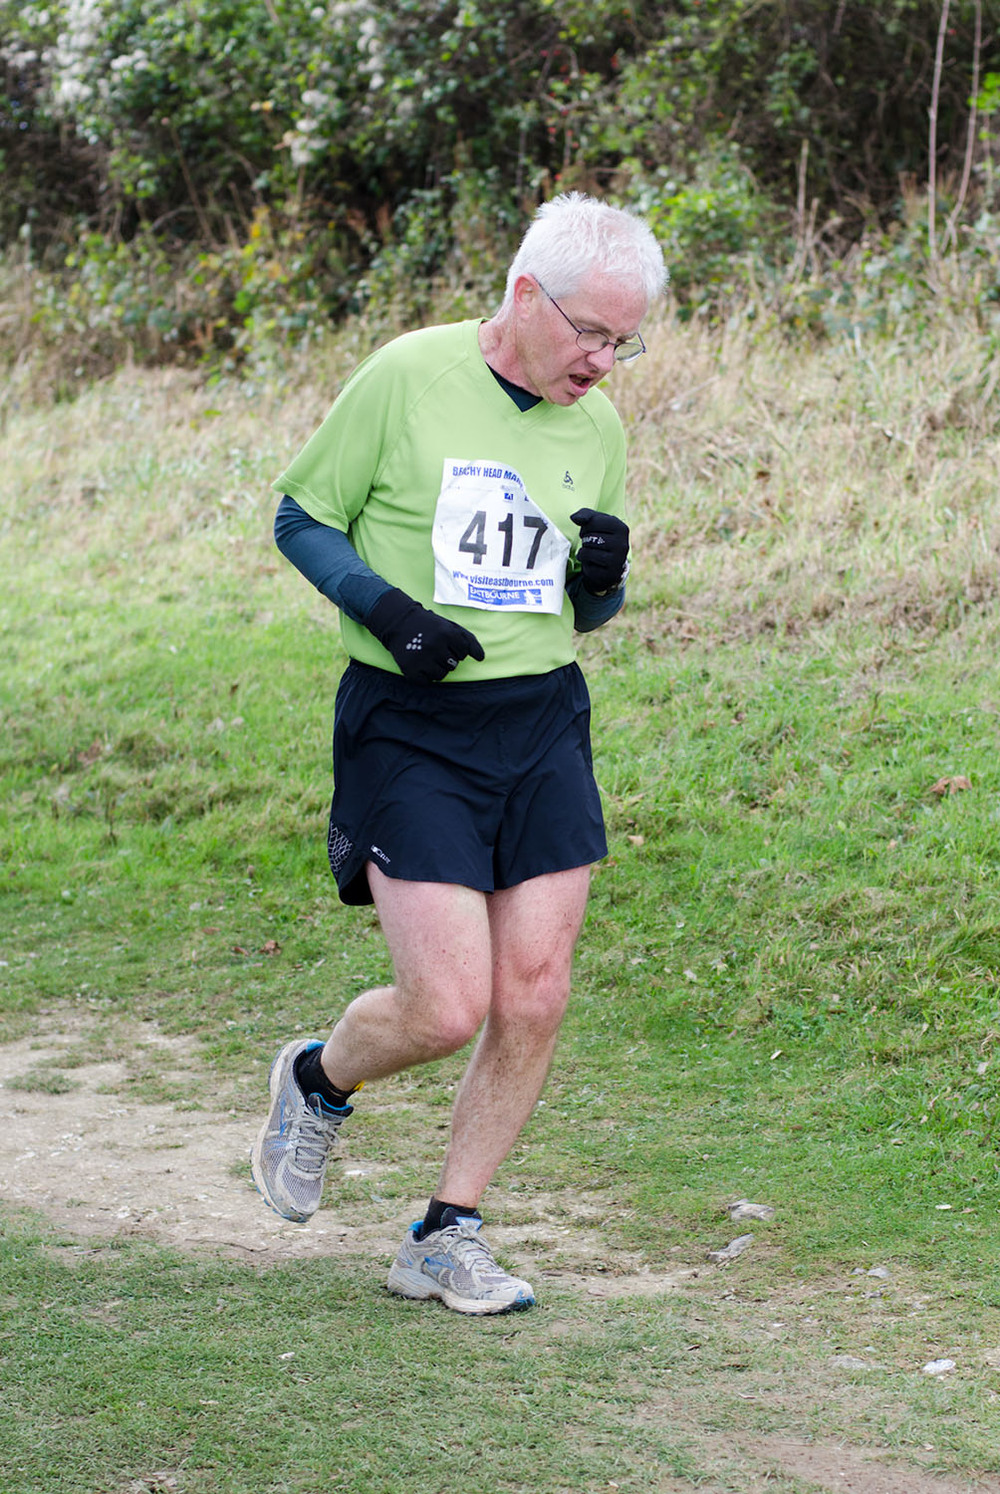 Beachy Head Marathon 2012 - Mile 25